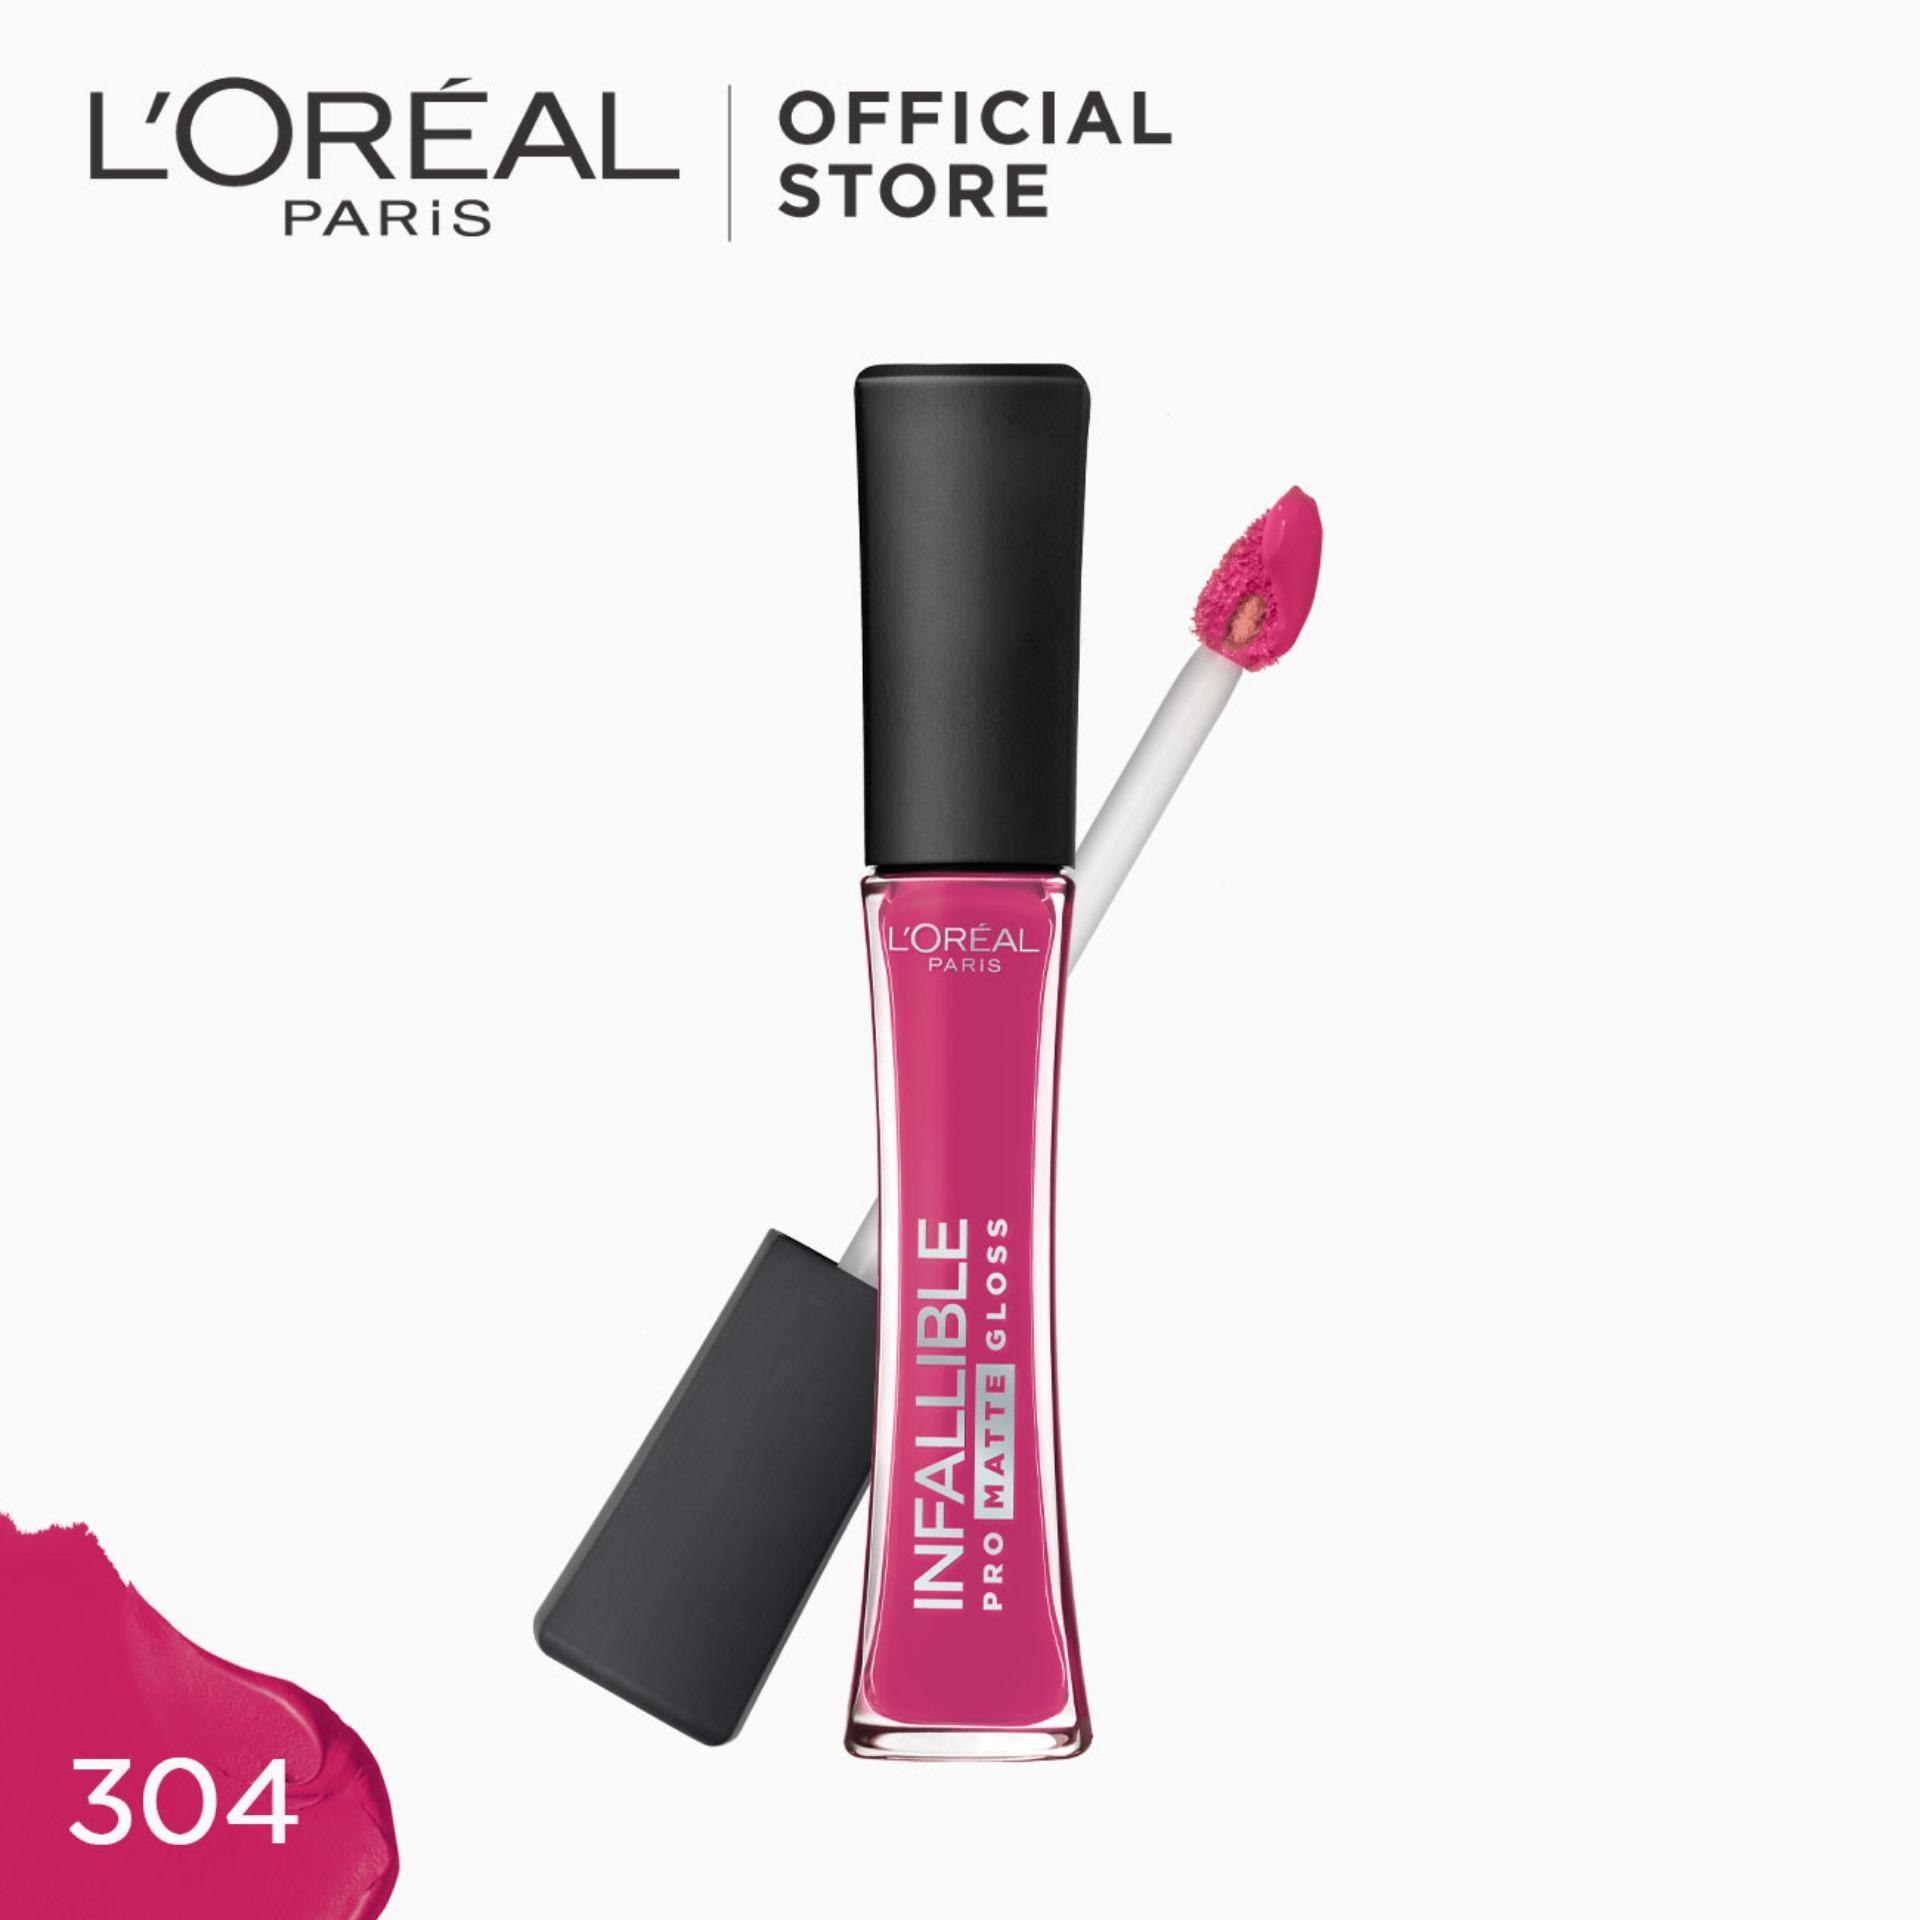 Infallible Pro-Matte Gloss Liquid Lipstick - Rebel Rose 304 [#NeverFail] by LOréal Paris Philippines